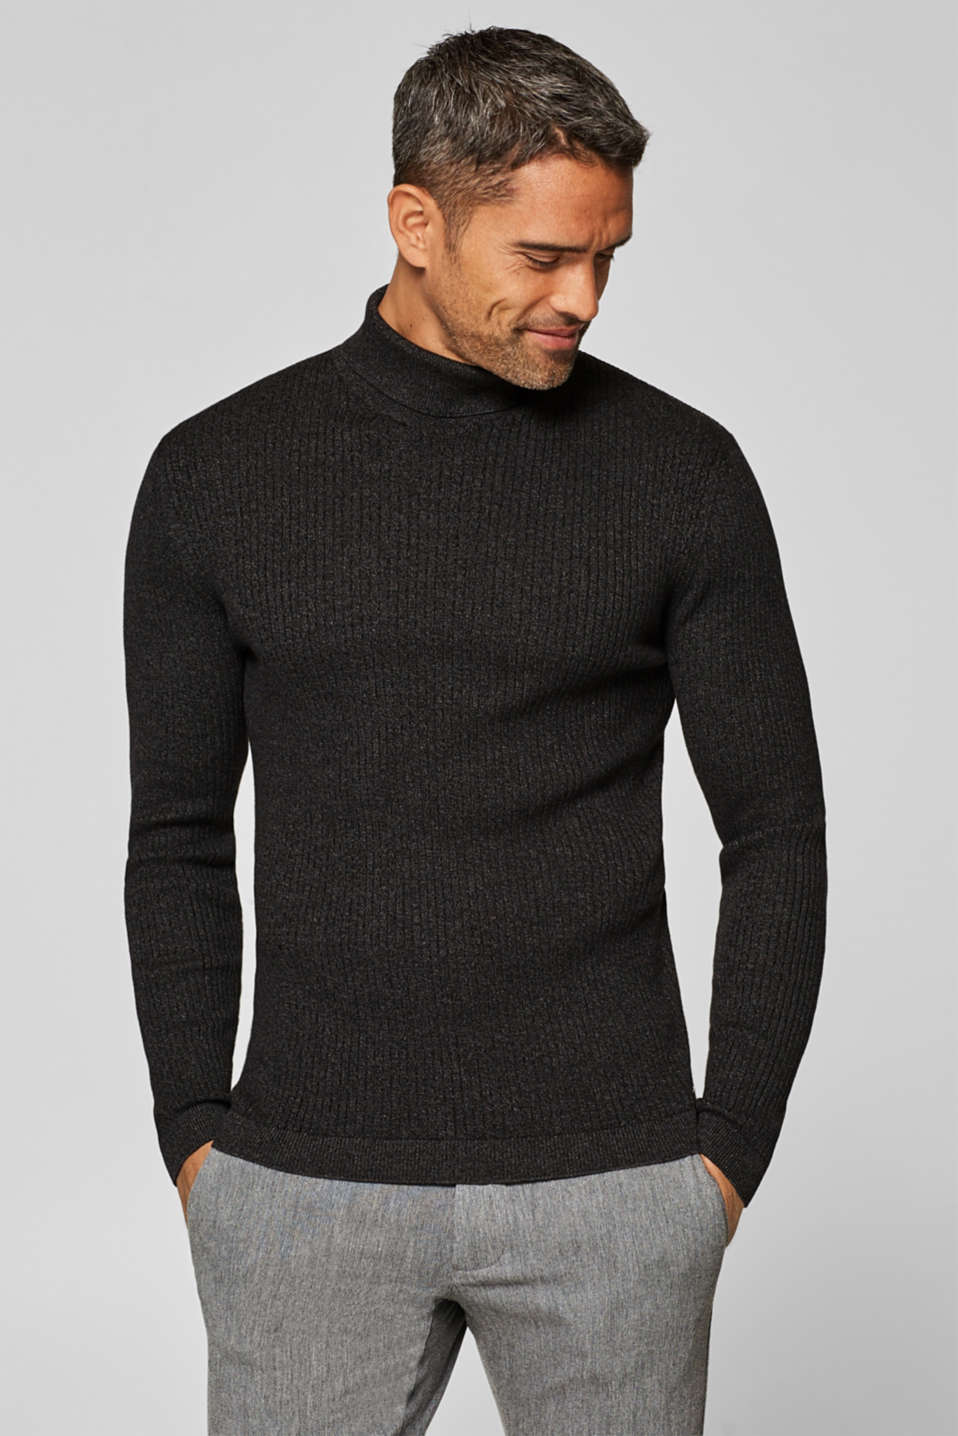 edc - Muscle-fit jumper with a polo neck, 100% cotton